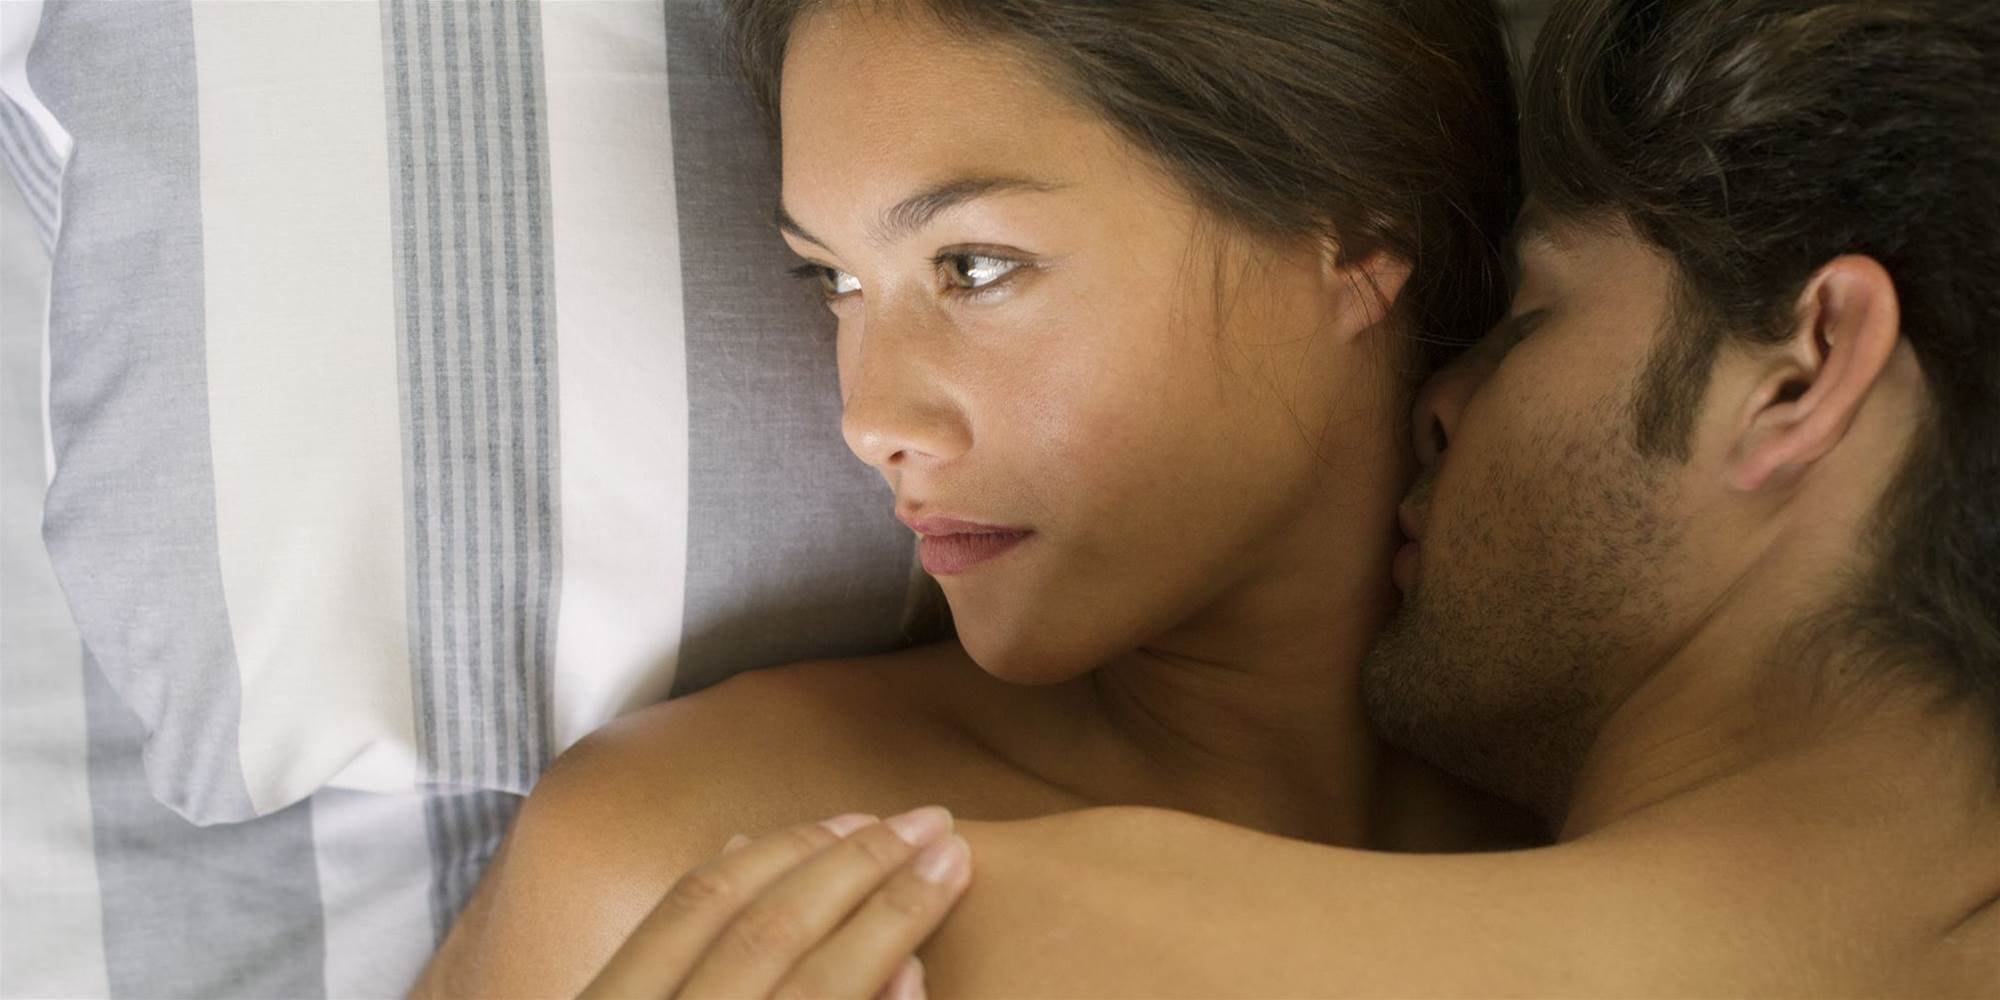 10 Possible Reasons Why You're Feeling Pain During Sex